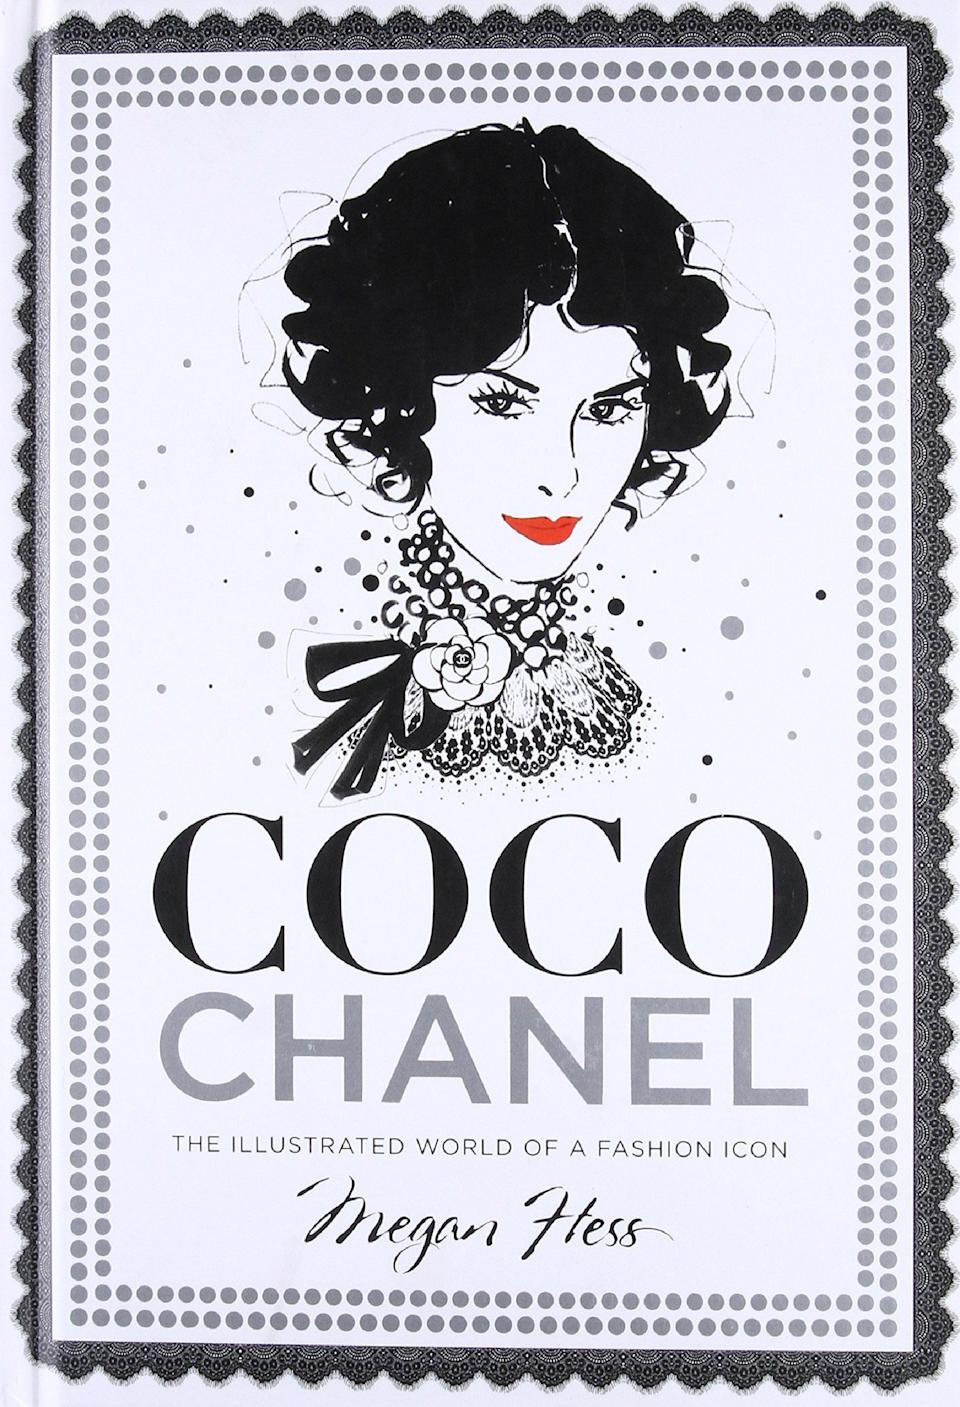 'Coco Chanel: The Illustrated World of a Fashion Icon' by Megan Hess